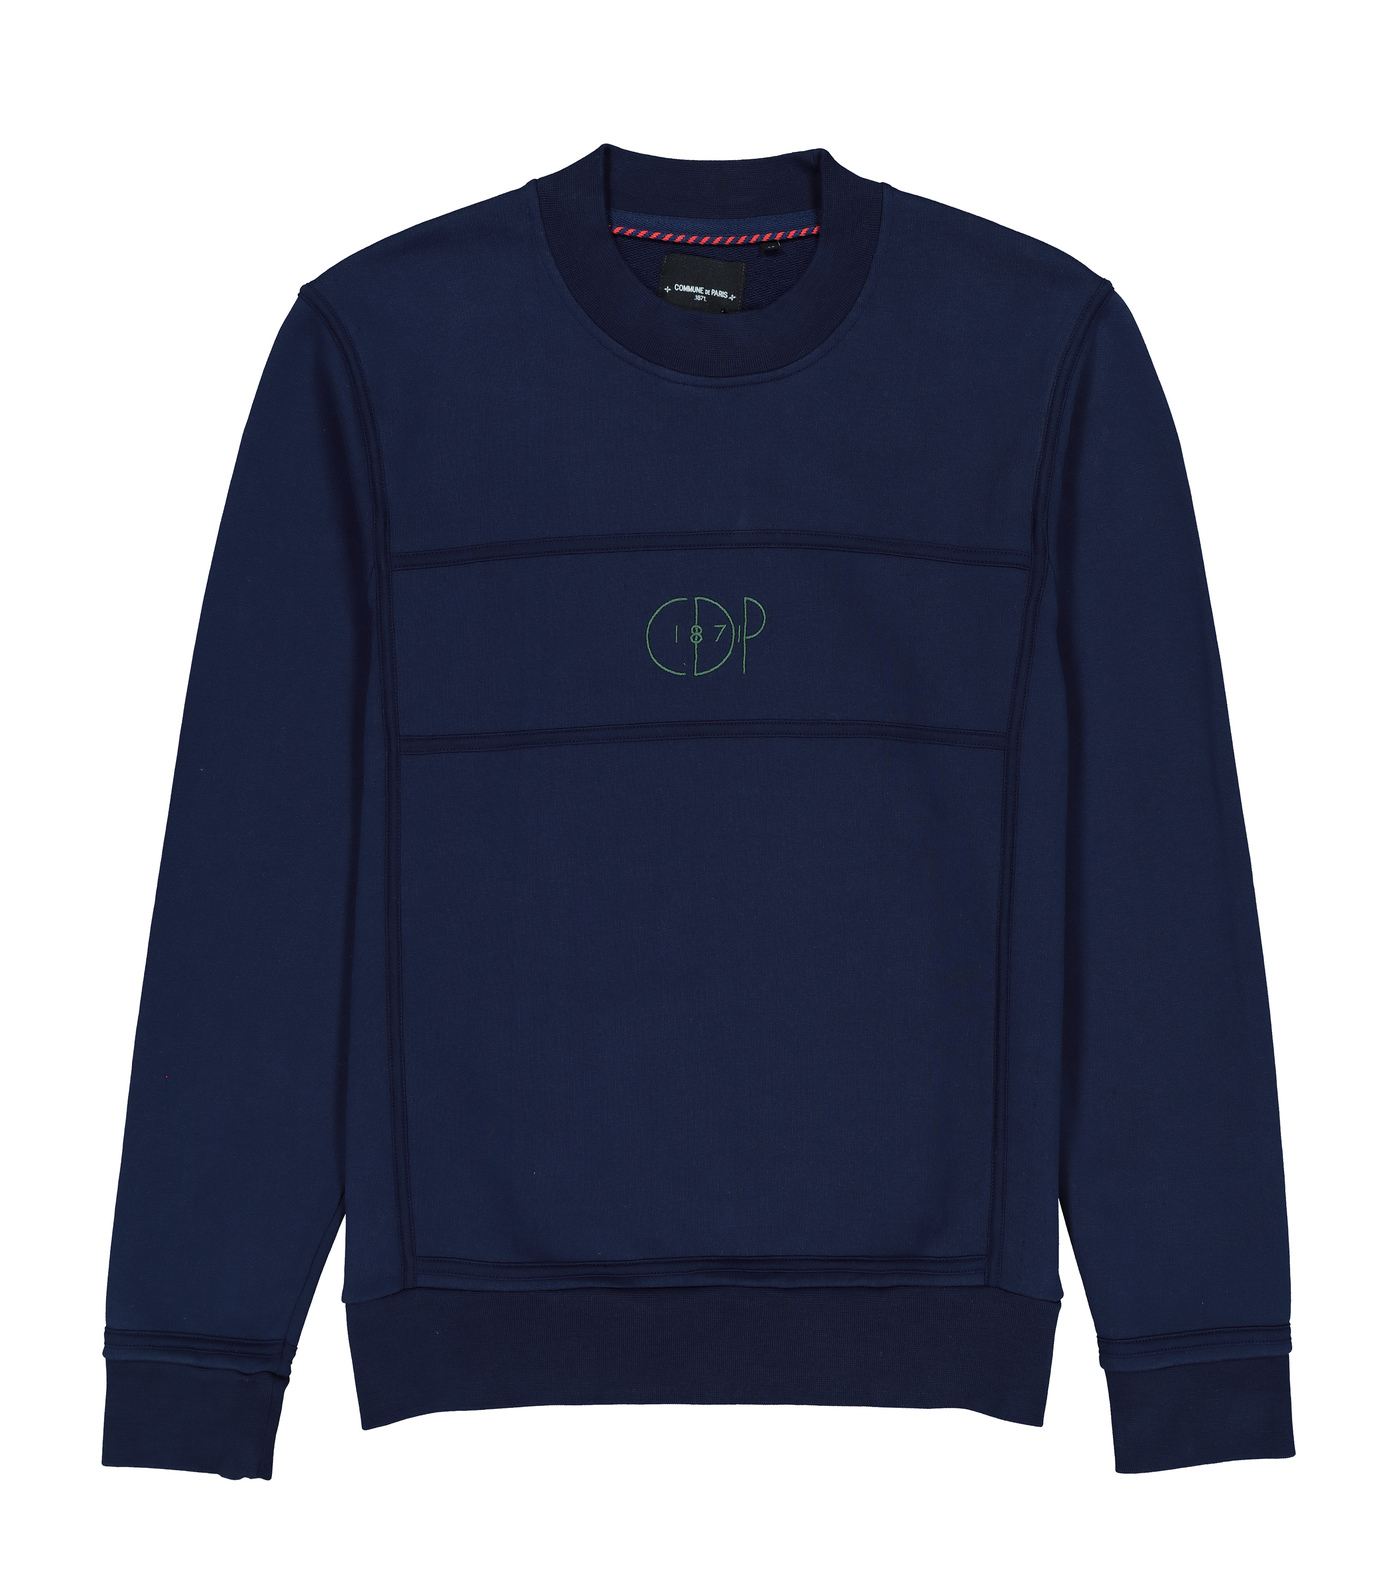 SWEAT MONDRIAN - Navy